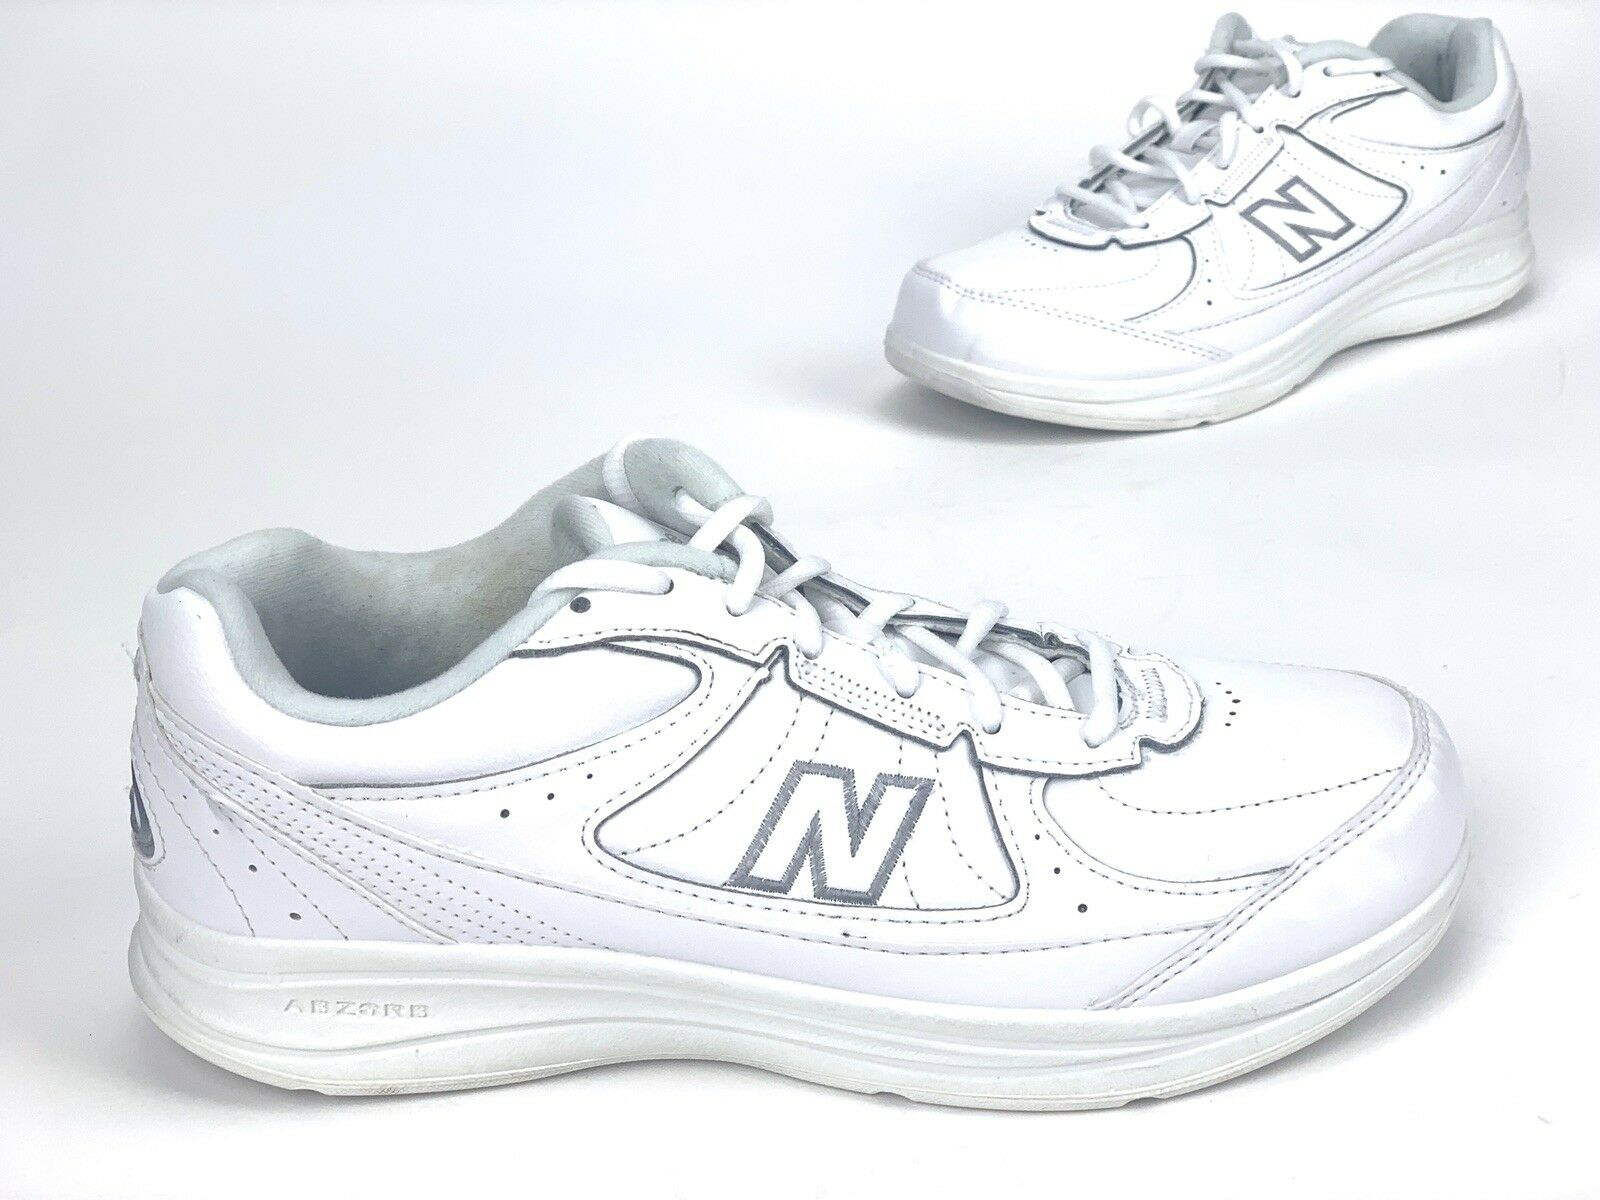 New Balance WW577WT Women's Size 9.5 D White Walking Sneaker shoes DSL-2